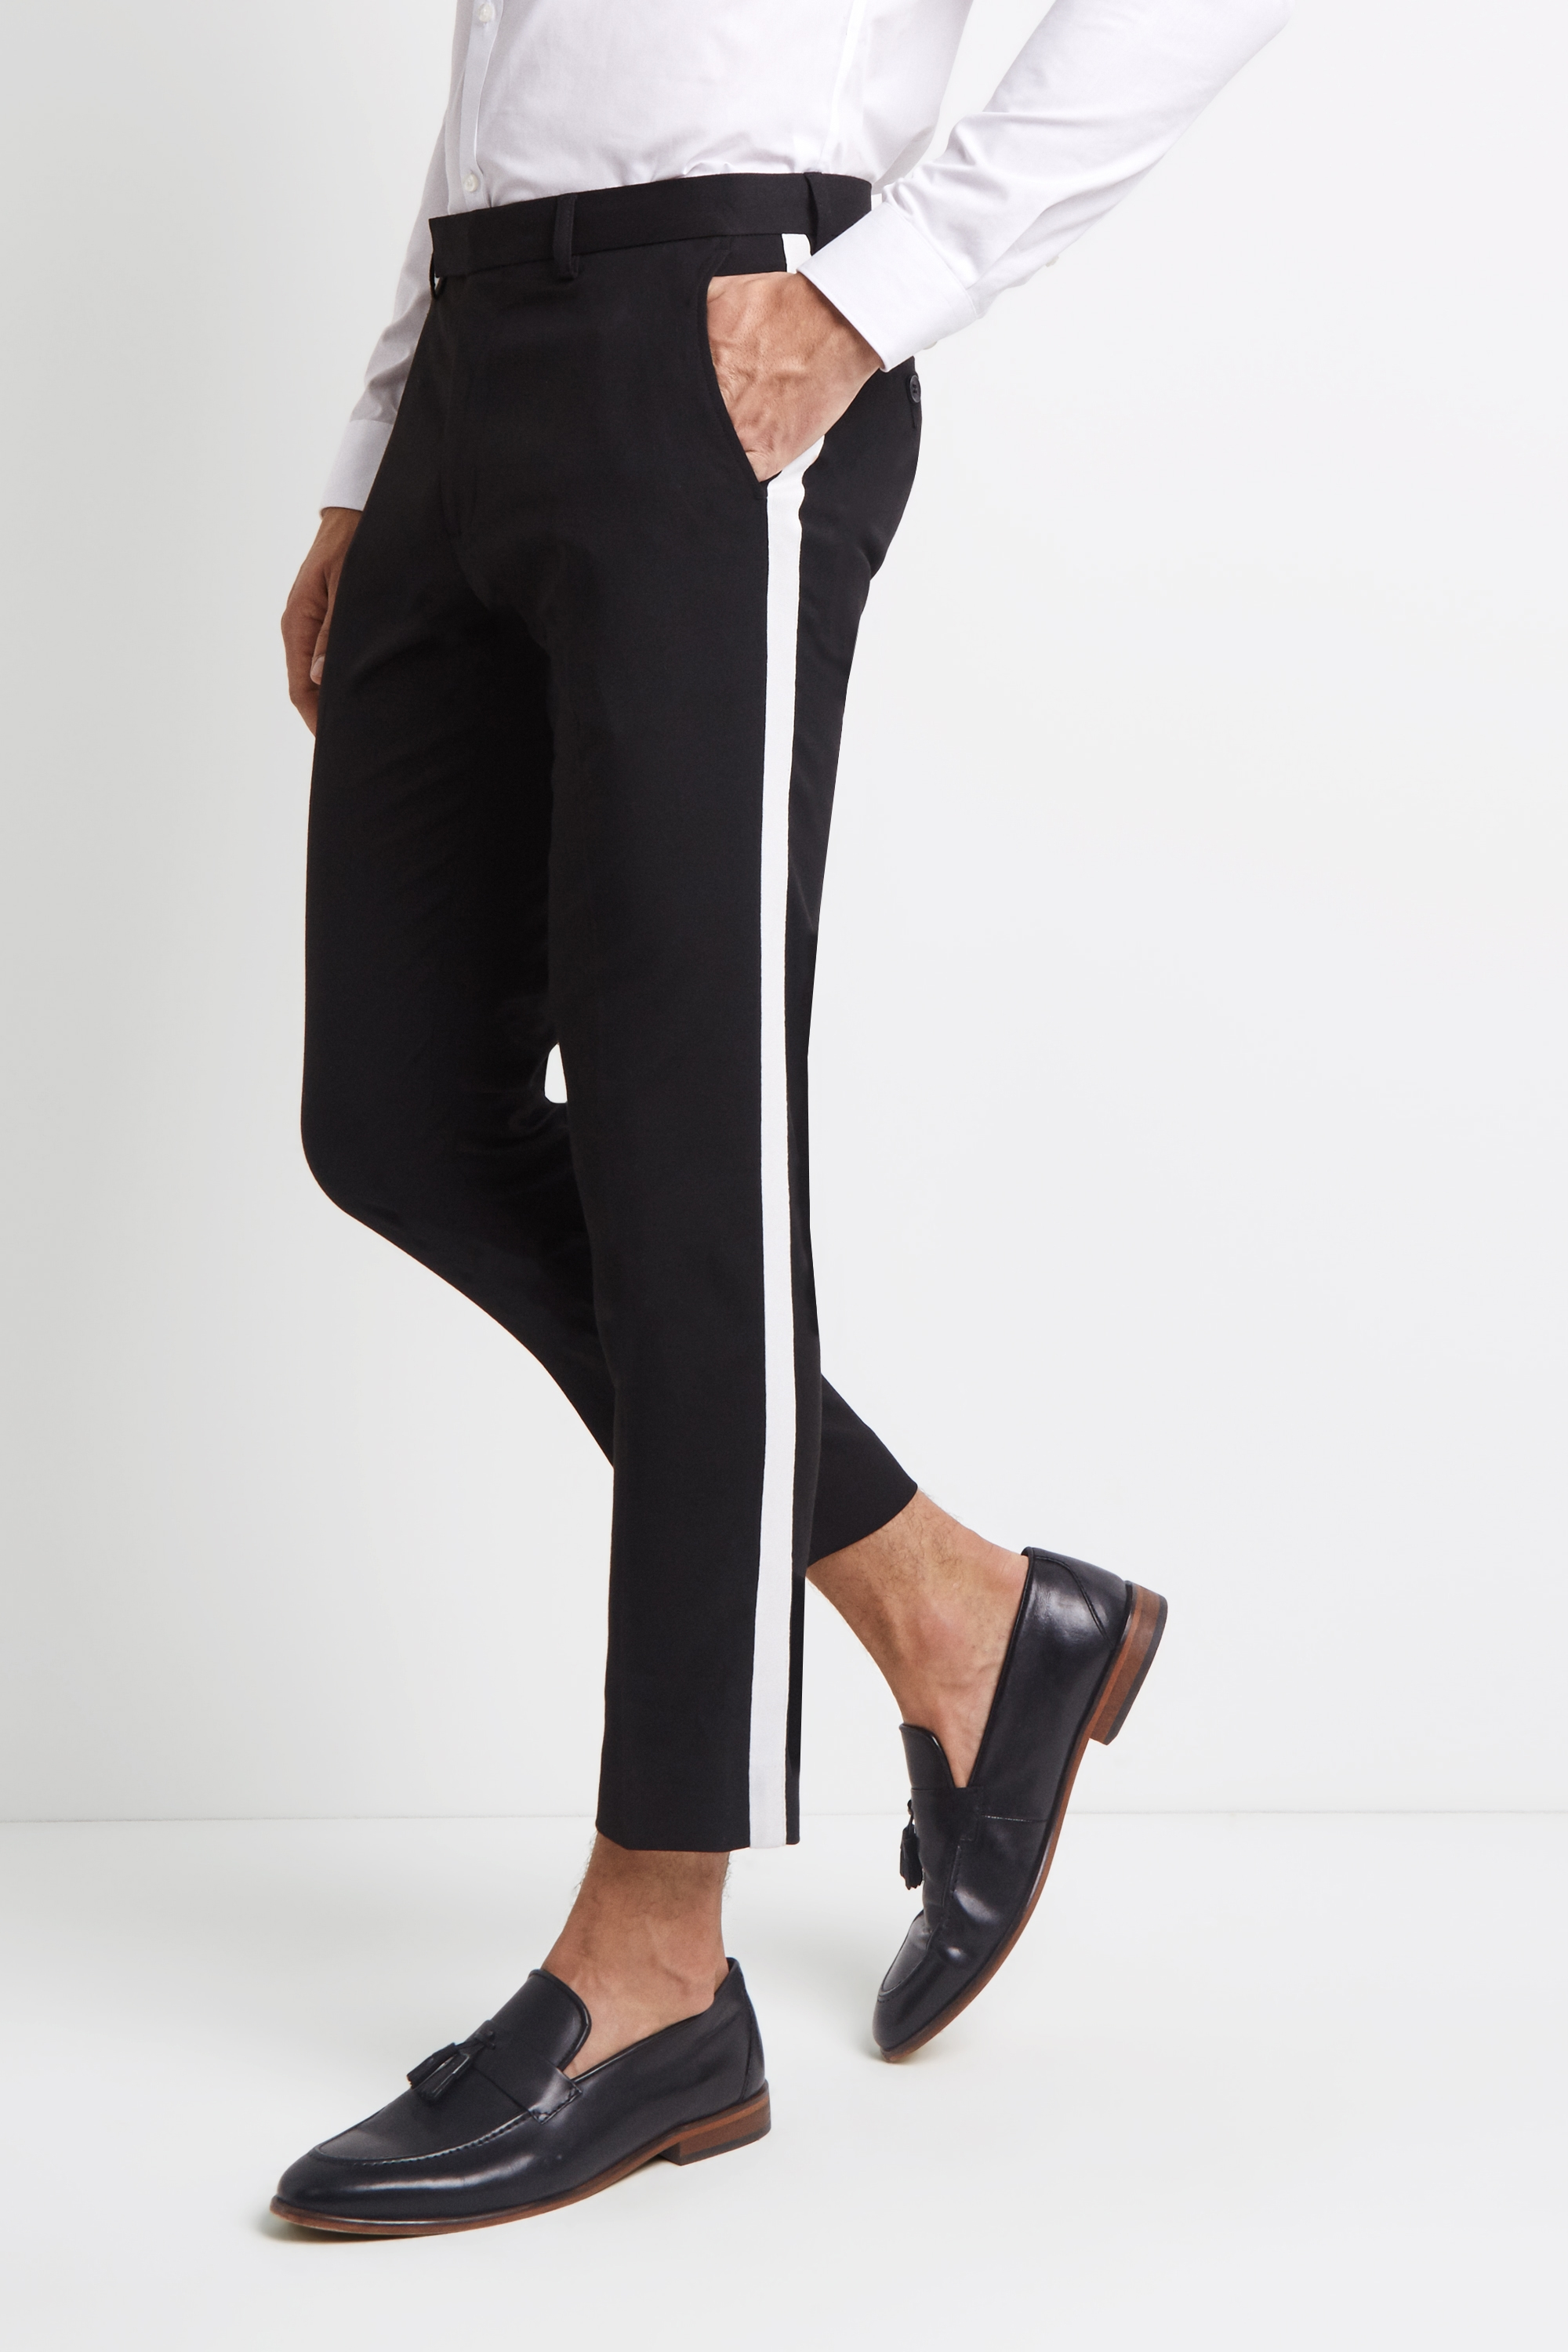 Moss London Mens Trousers Skinny Fit Black With White Side